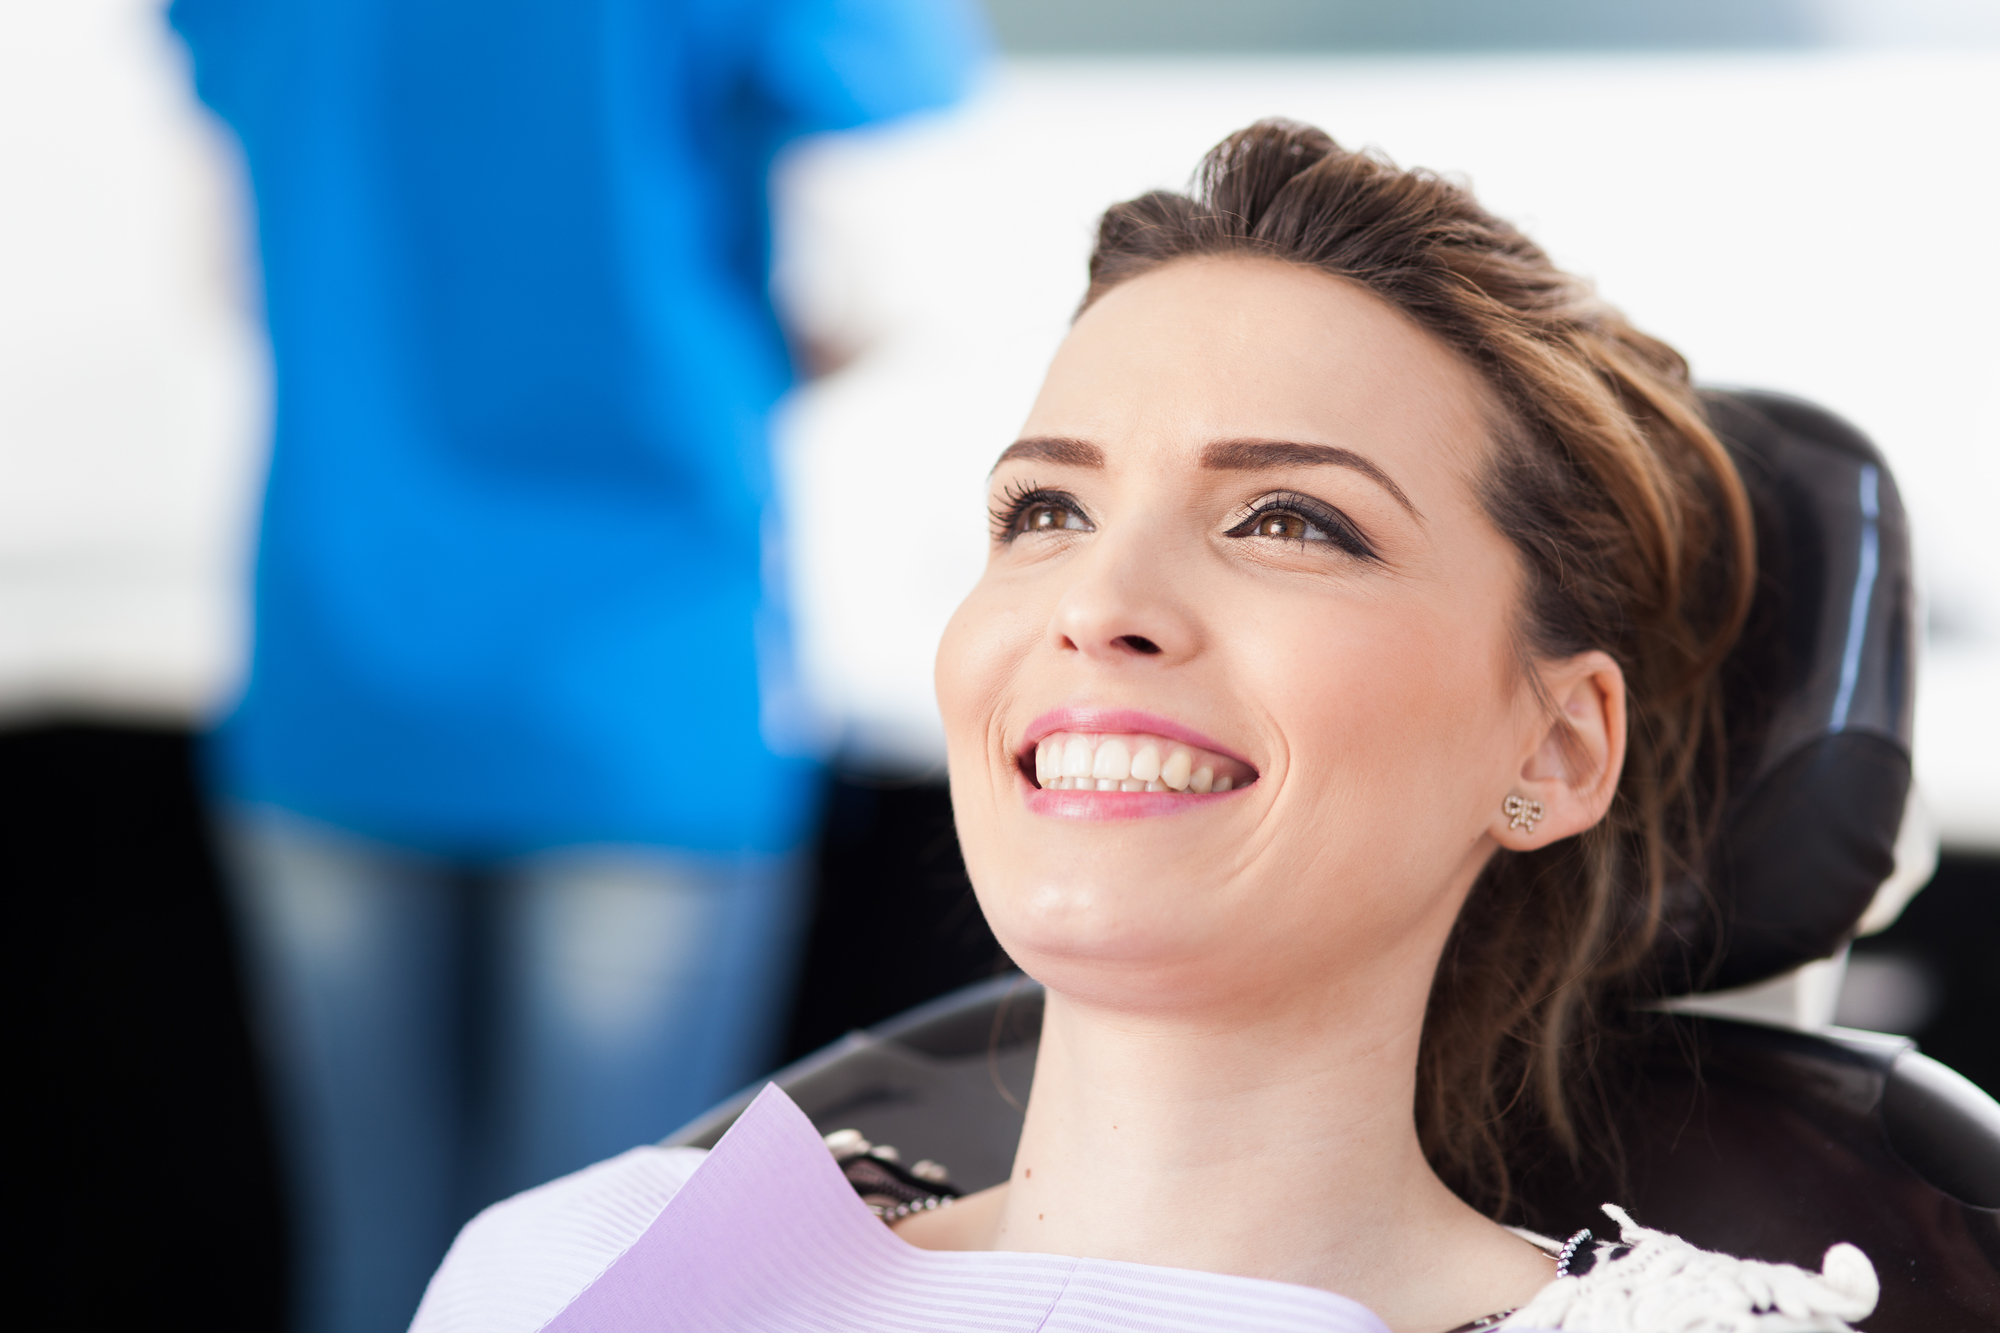 who offers dental implants coral springs?